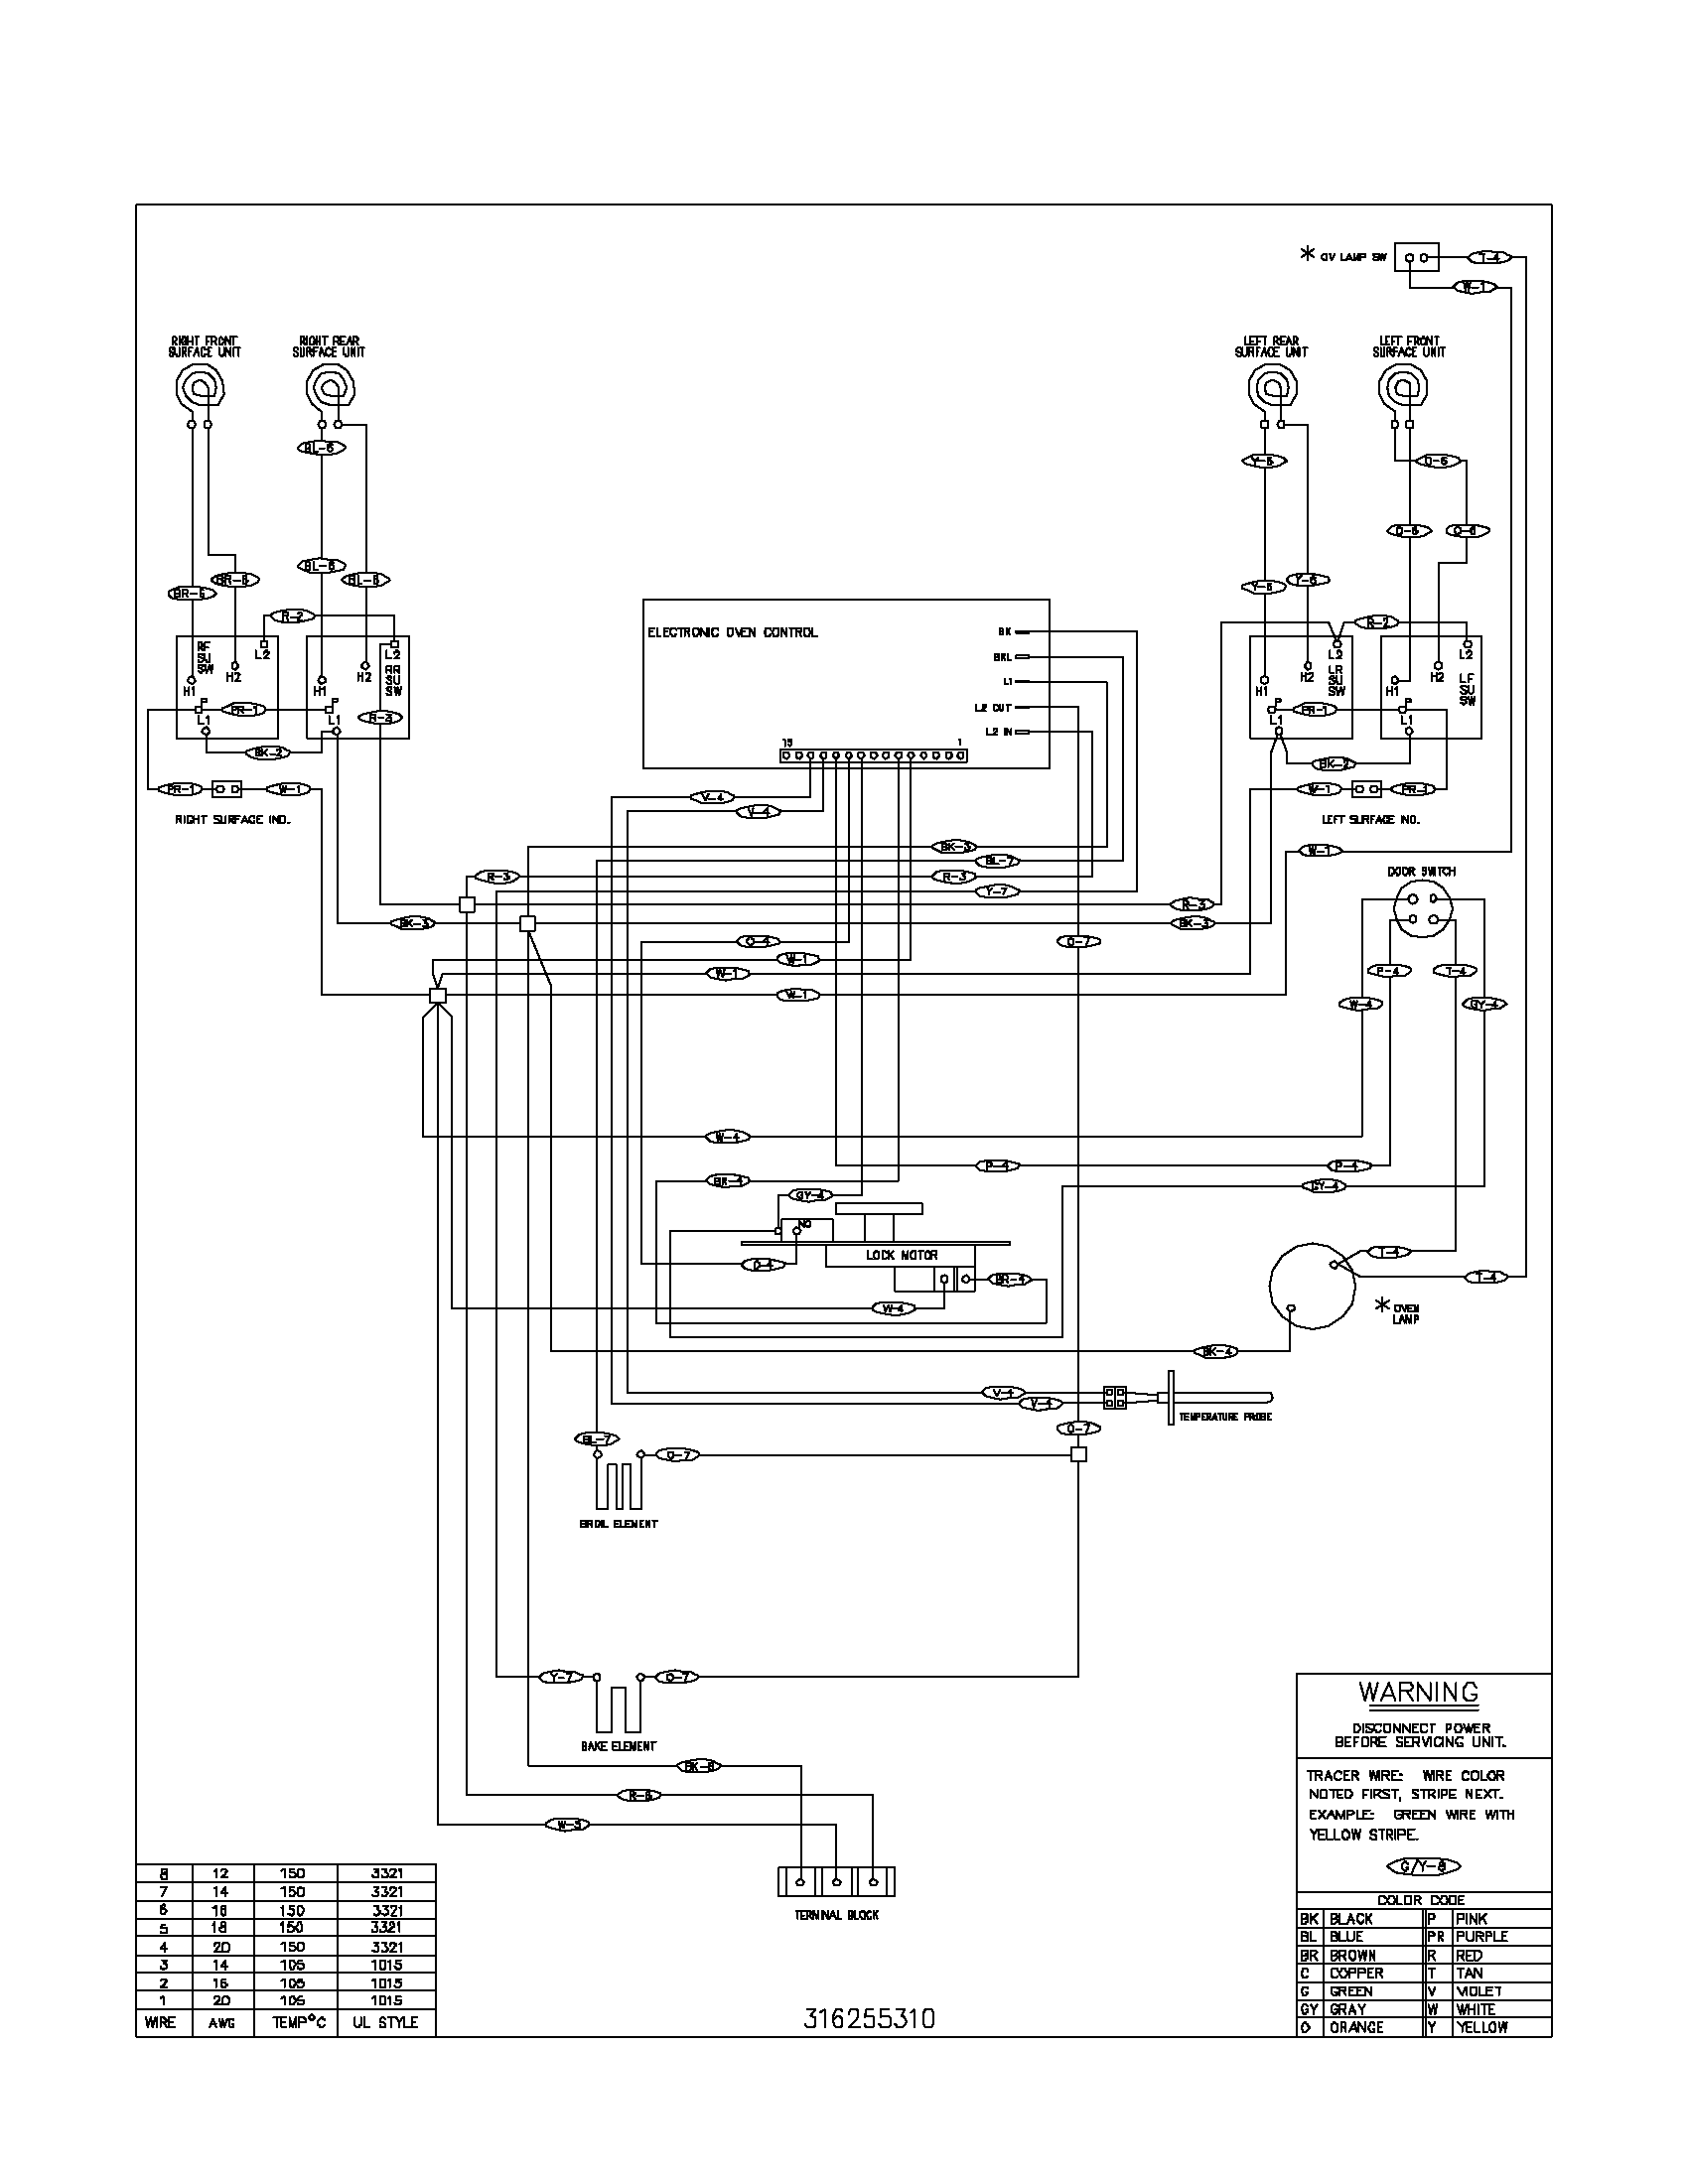 hotpoint wiring diagram 28 images hotpoint refrigerator rh sauhosting us Hotpoint Oven Electrical Diagram Hotpoint Dryer Parts Diagram